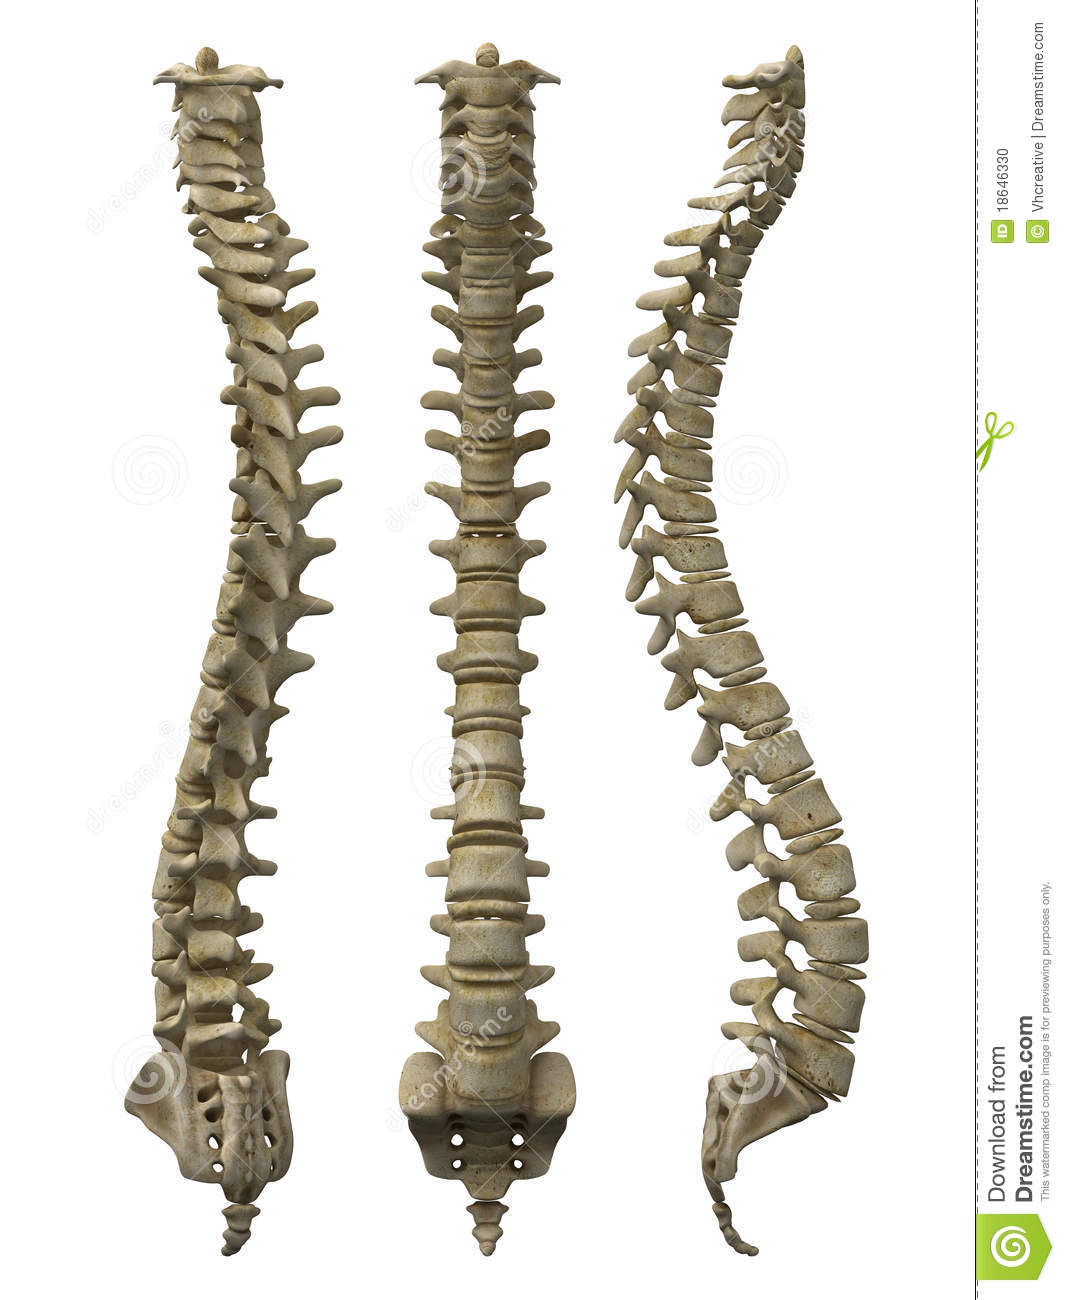 Human Spine Clipart - Clipart Suggest